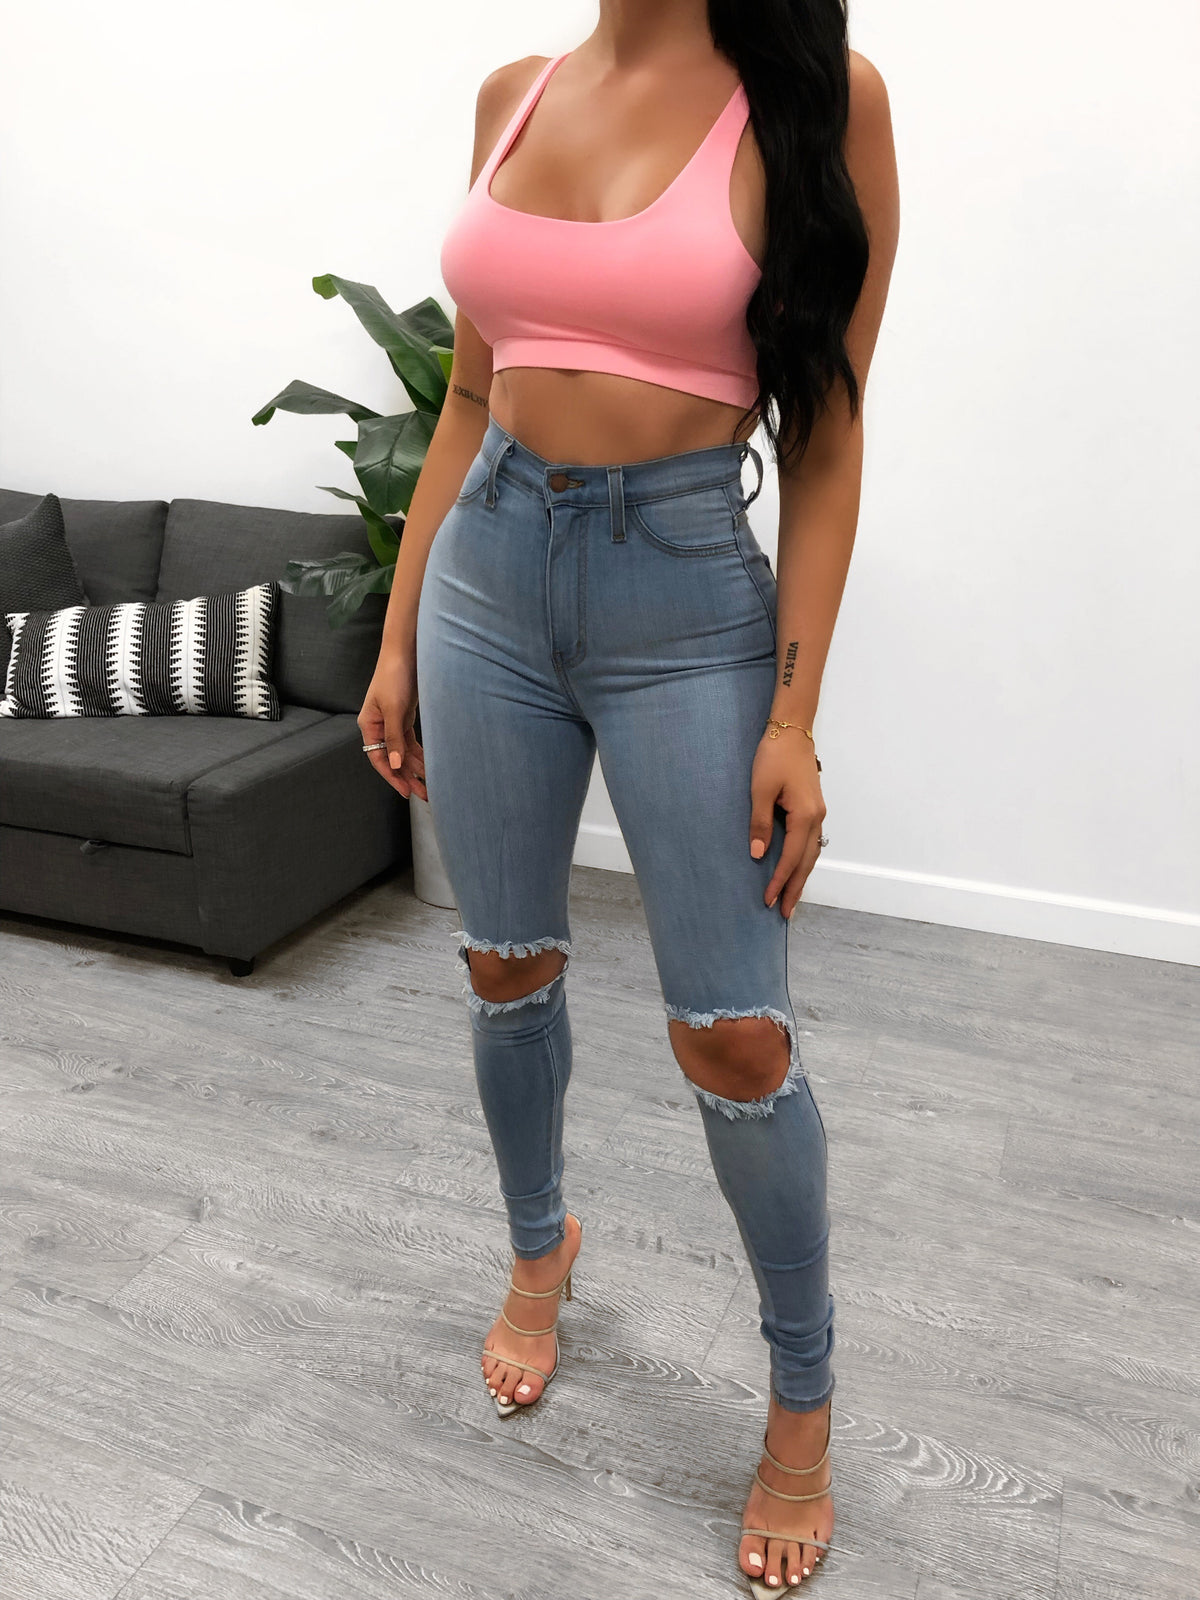 light denim high waist jeans with wide knee slits. jean length is past ankles